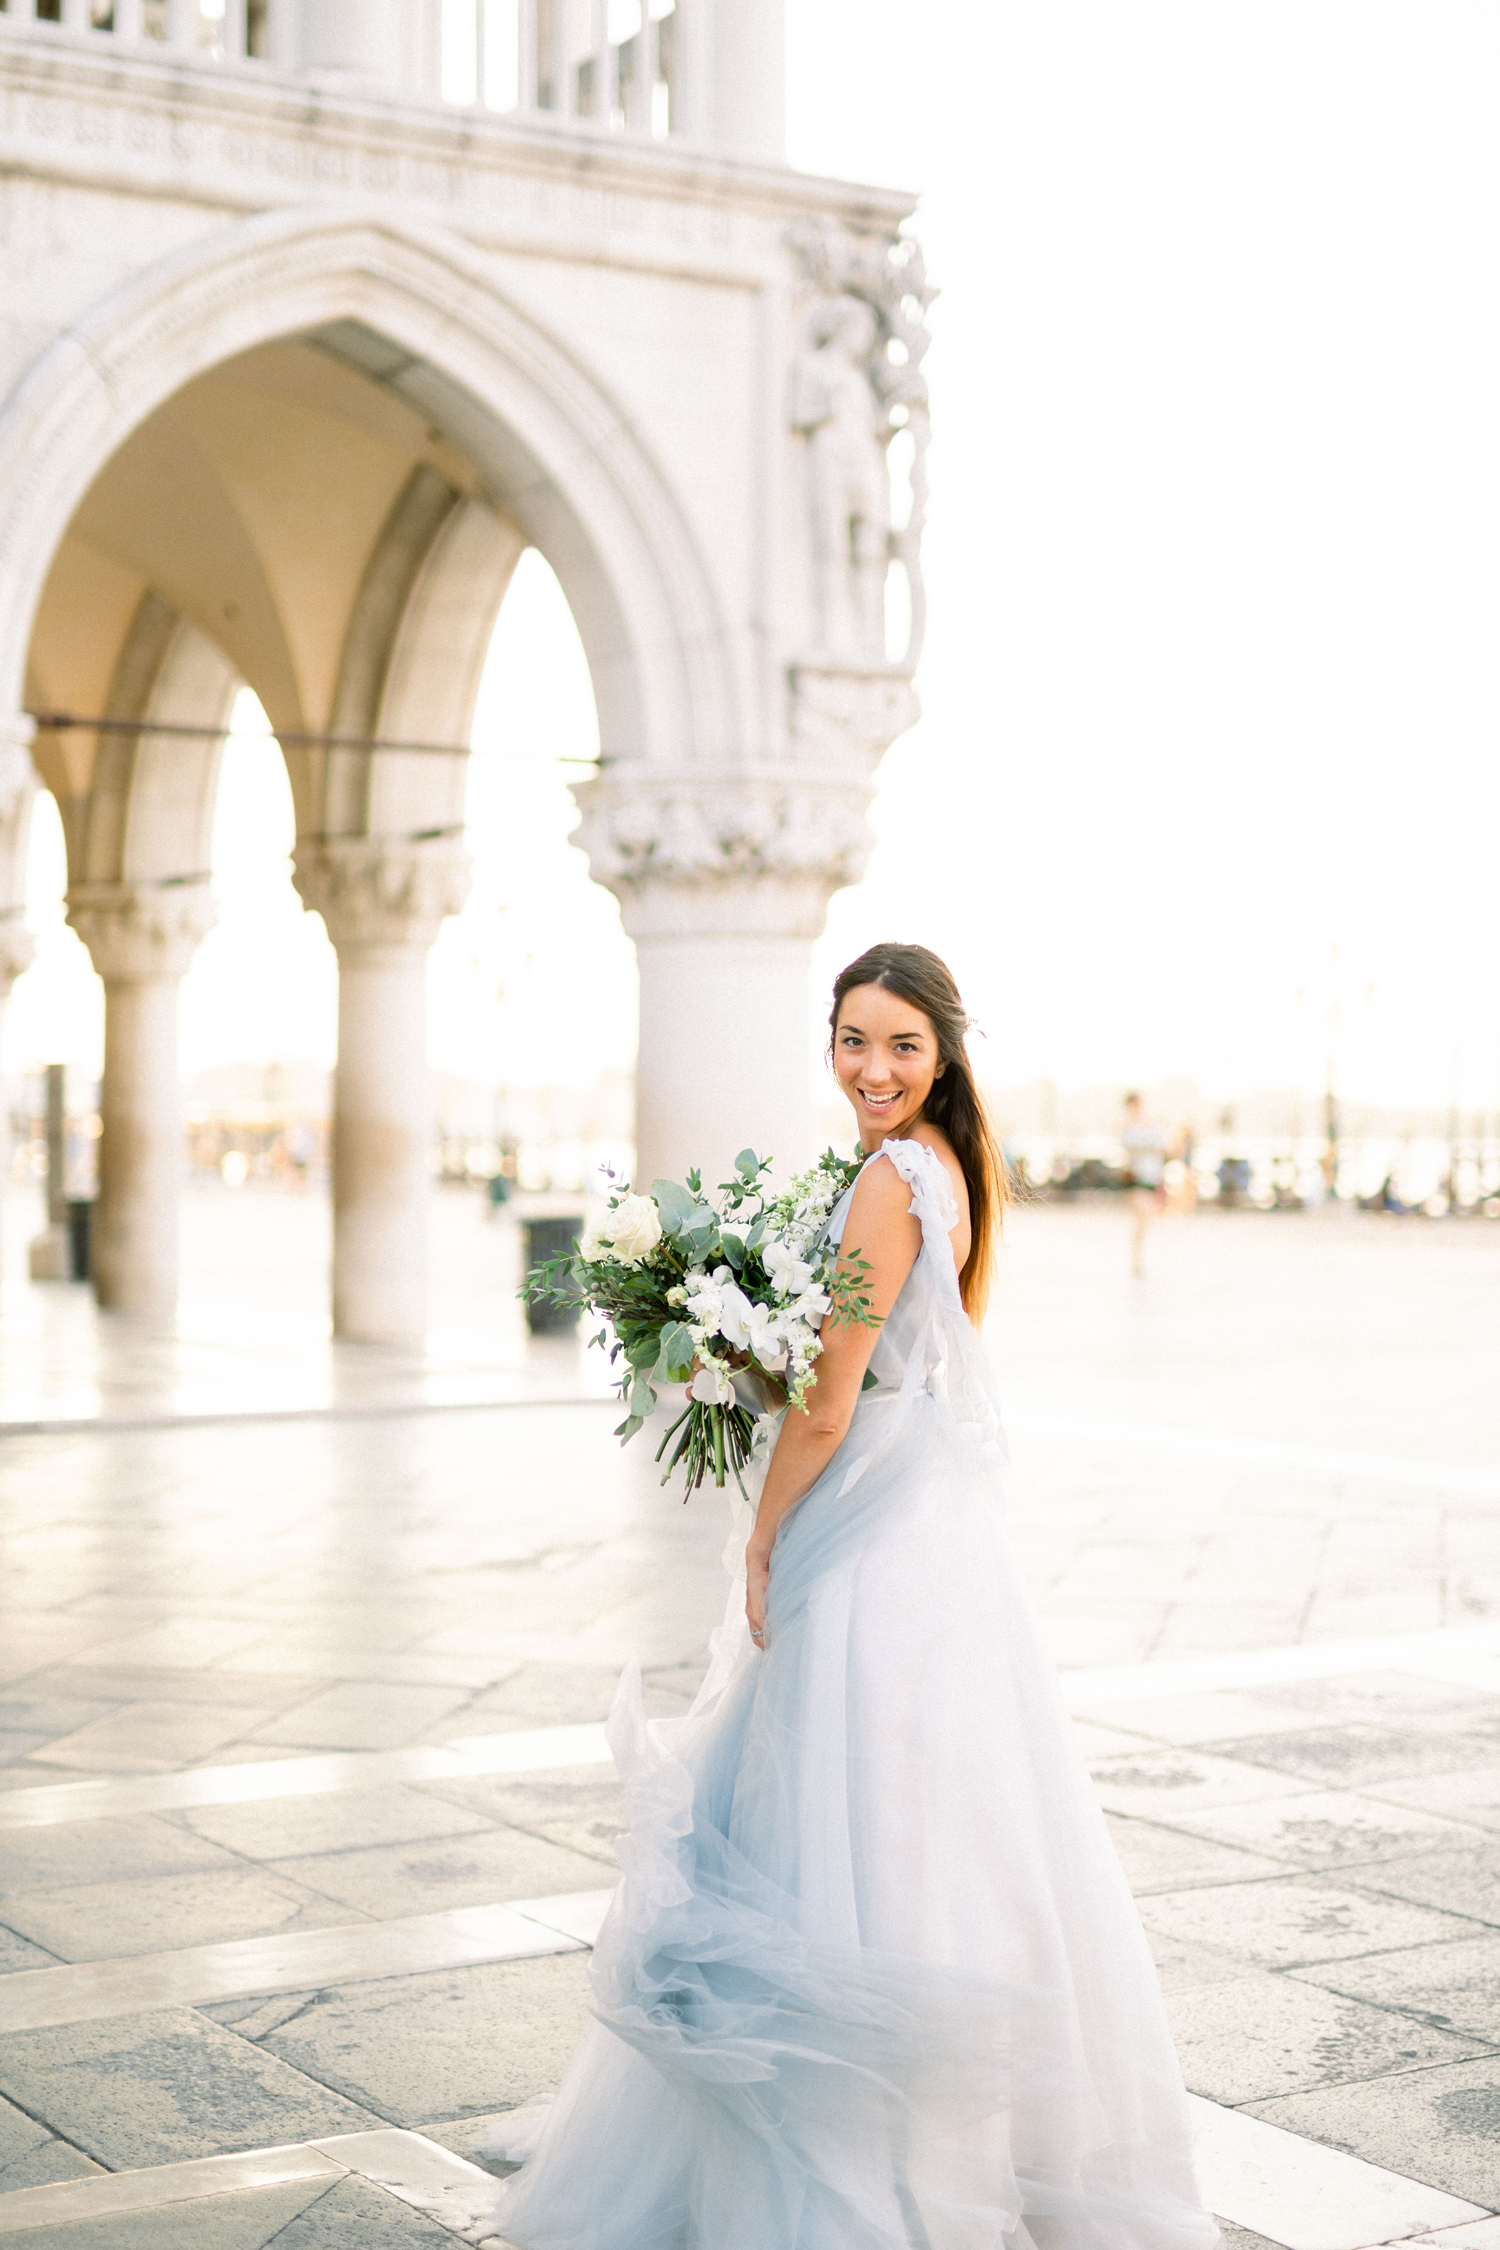 bride wearing light blue wedding dress